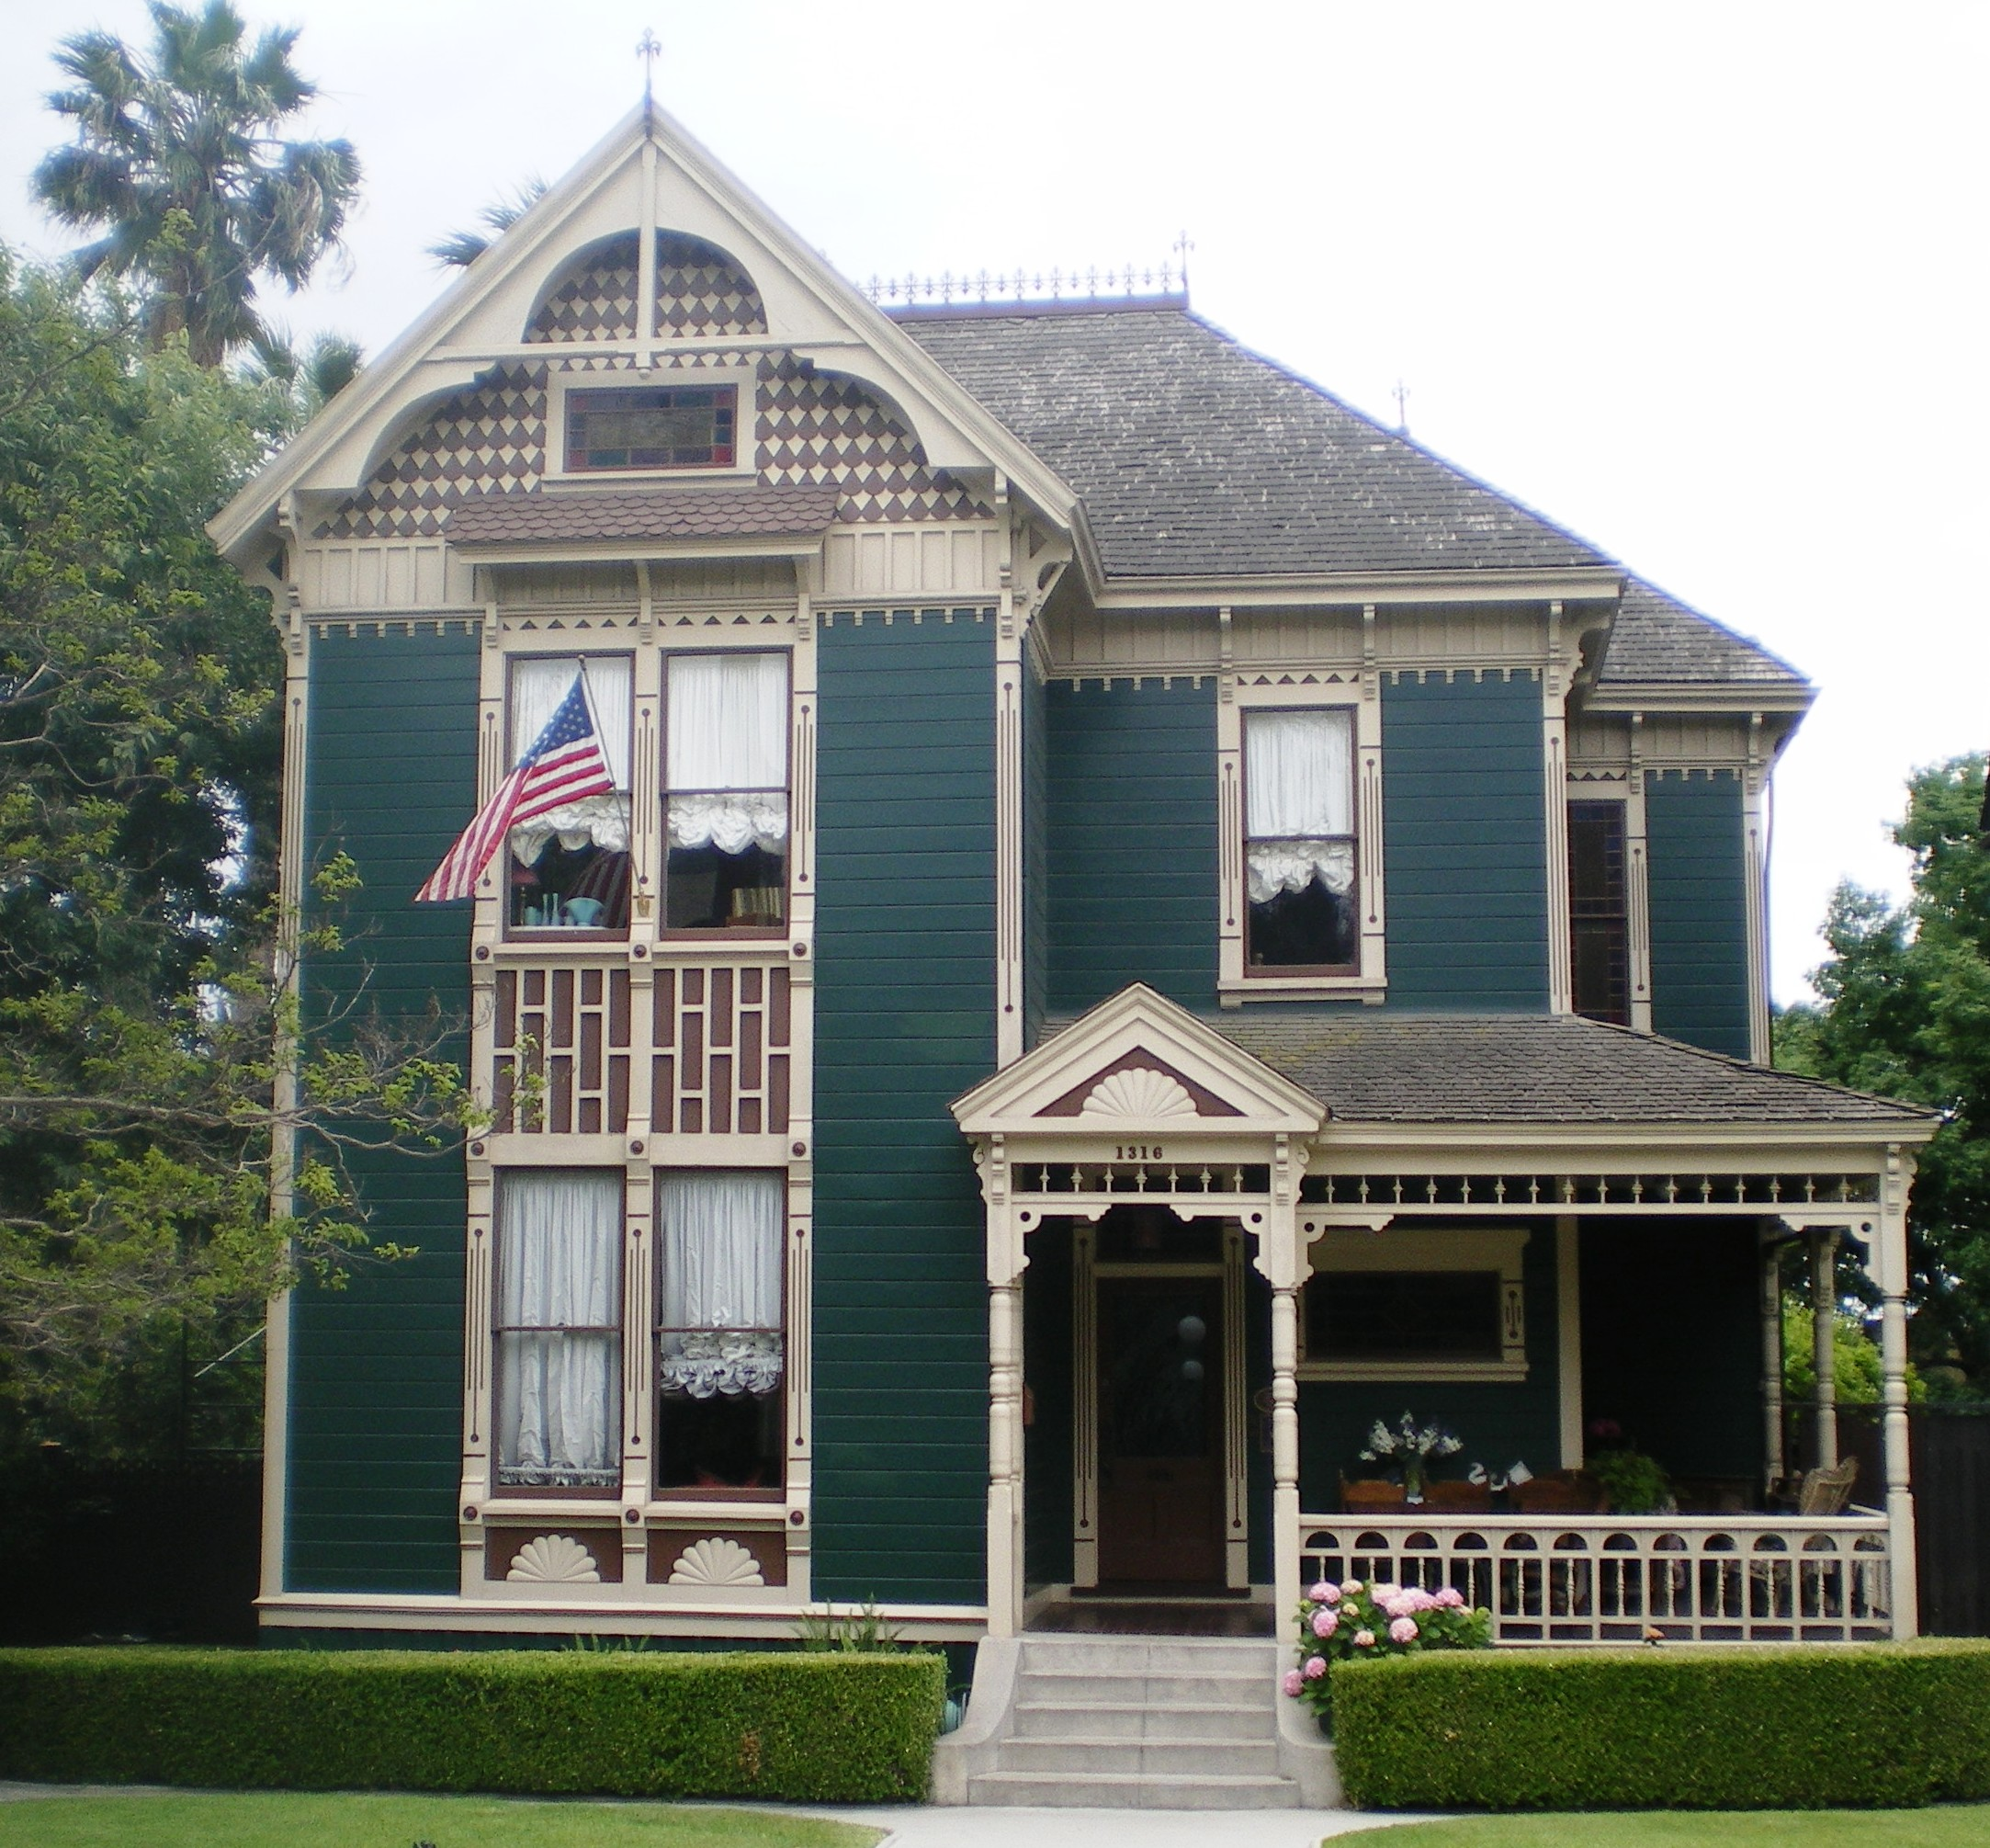 File:House At 1316 Carroll Avenue, Los Angeles.JPG